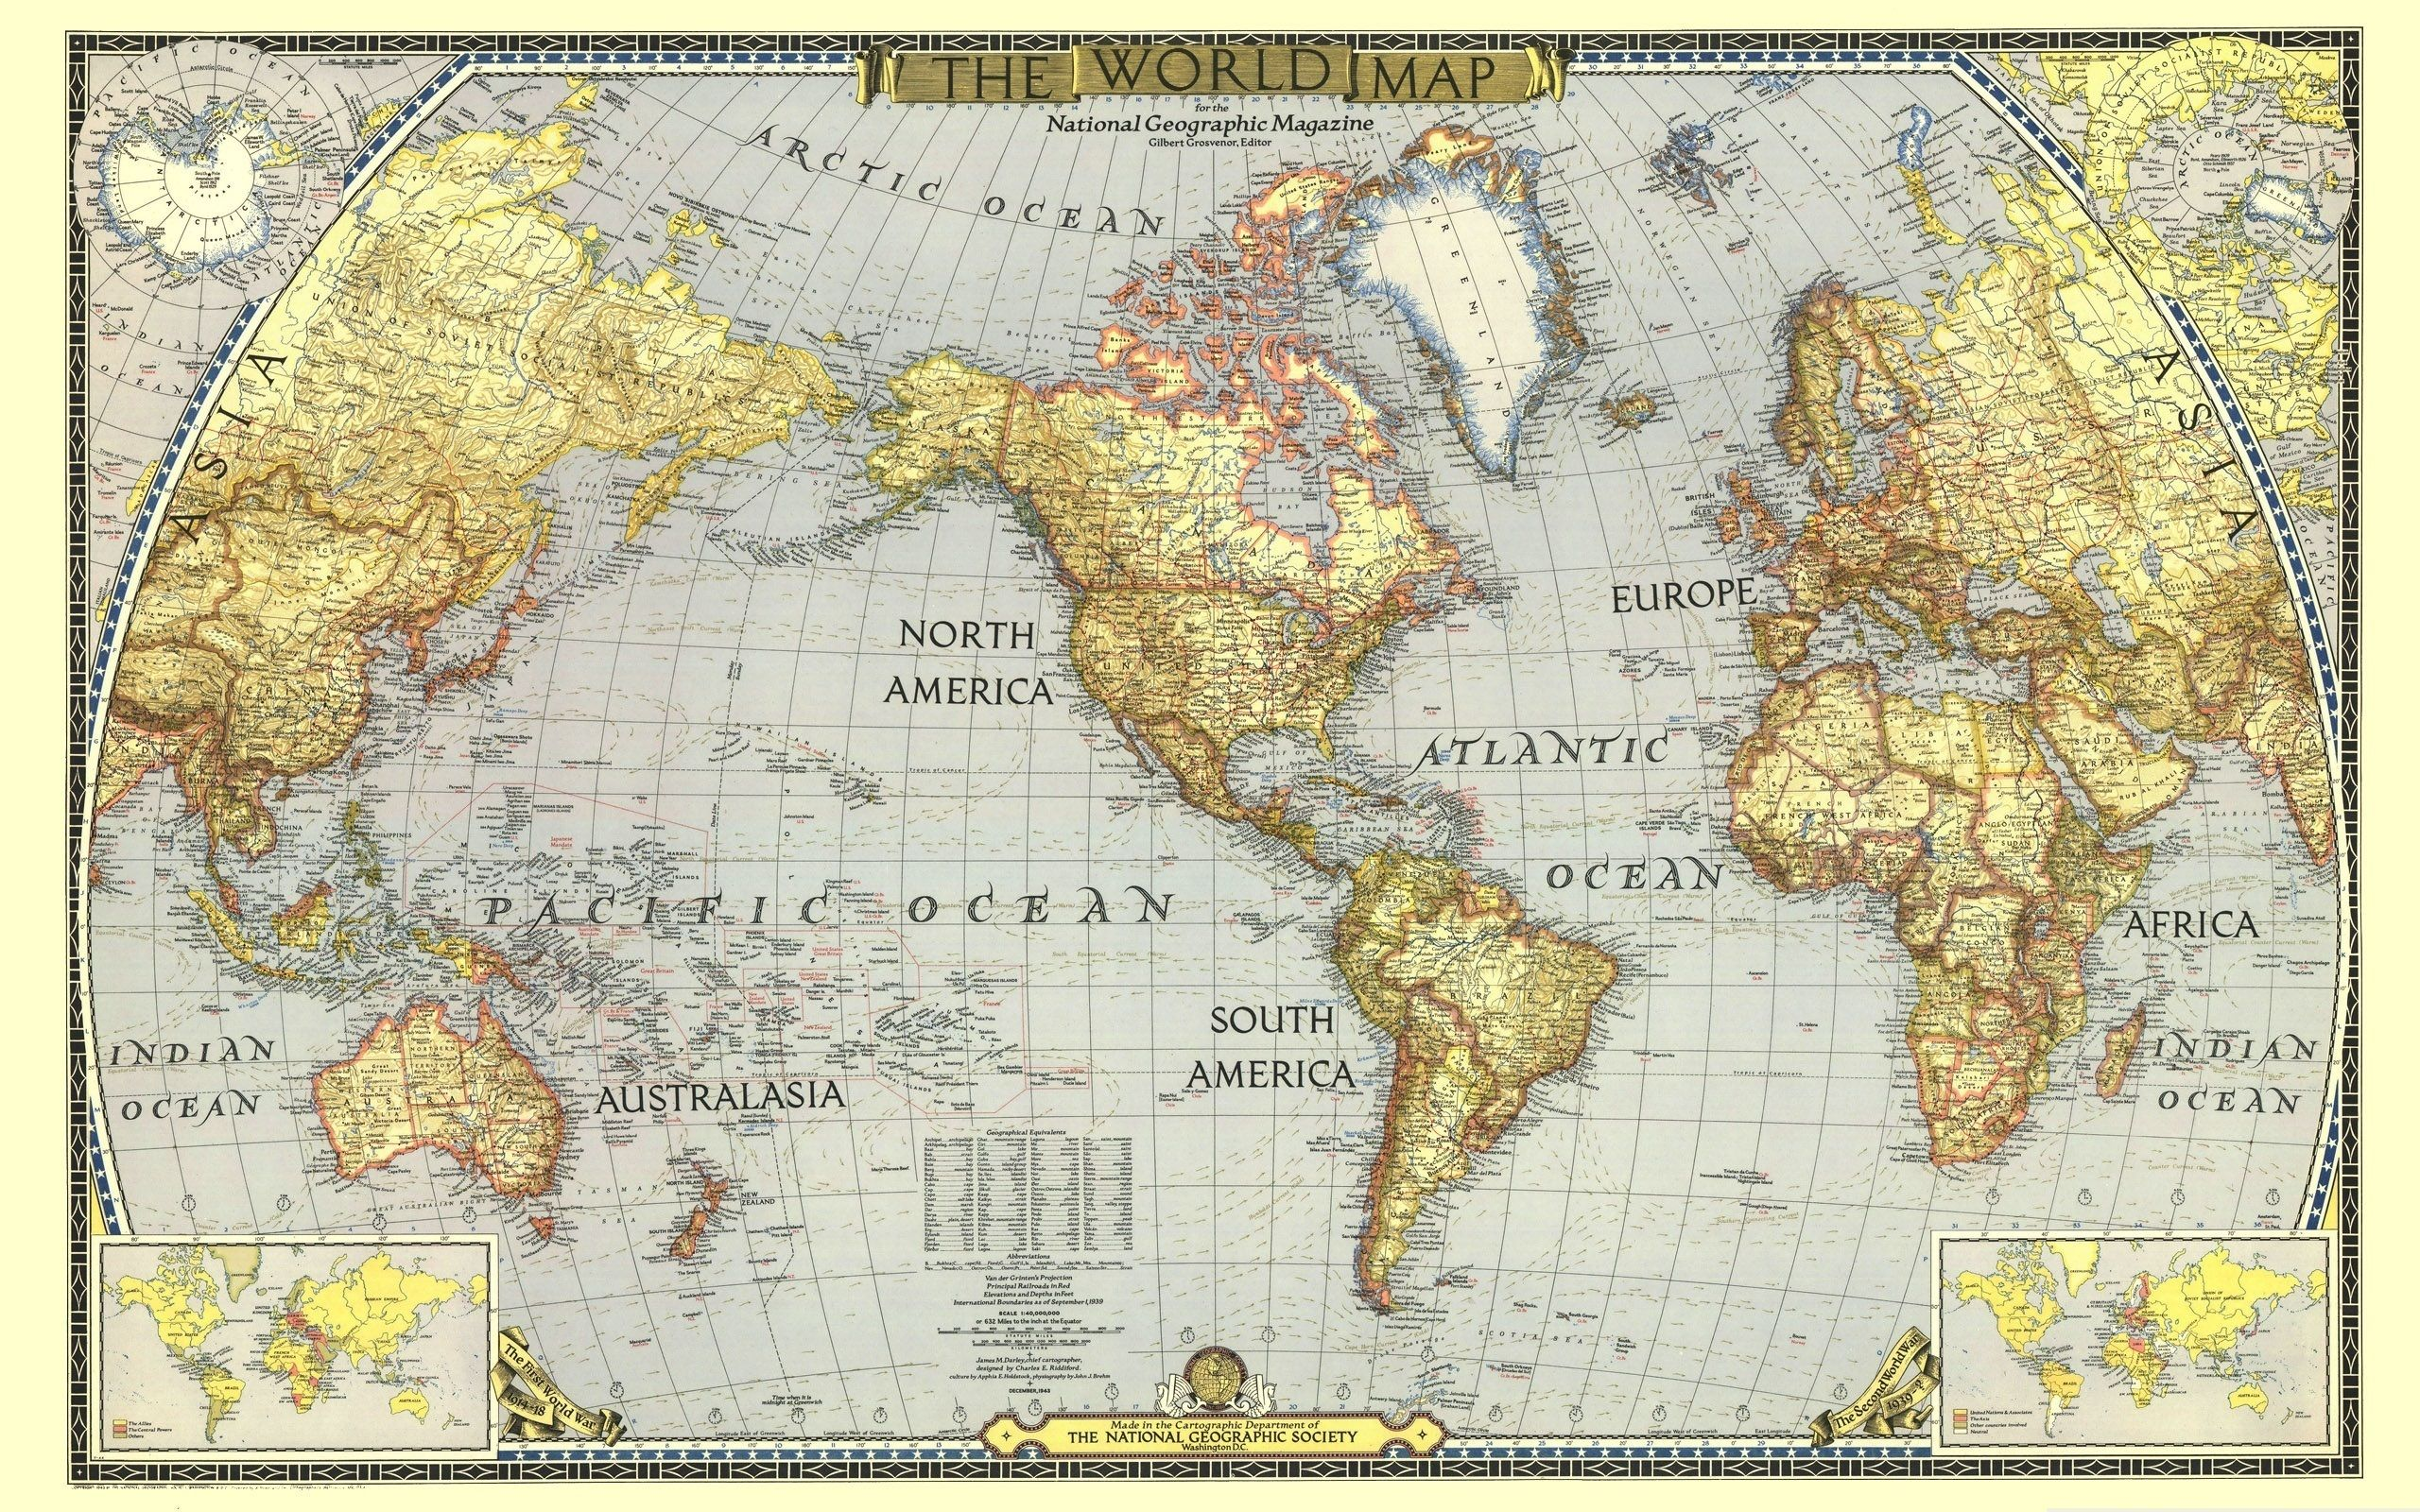 National geographic world map wallpaper maps pinterest national geographic world map wallpaper gumiabroncs Image collections